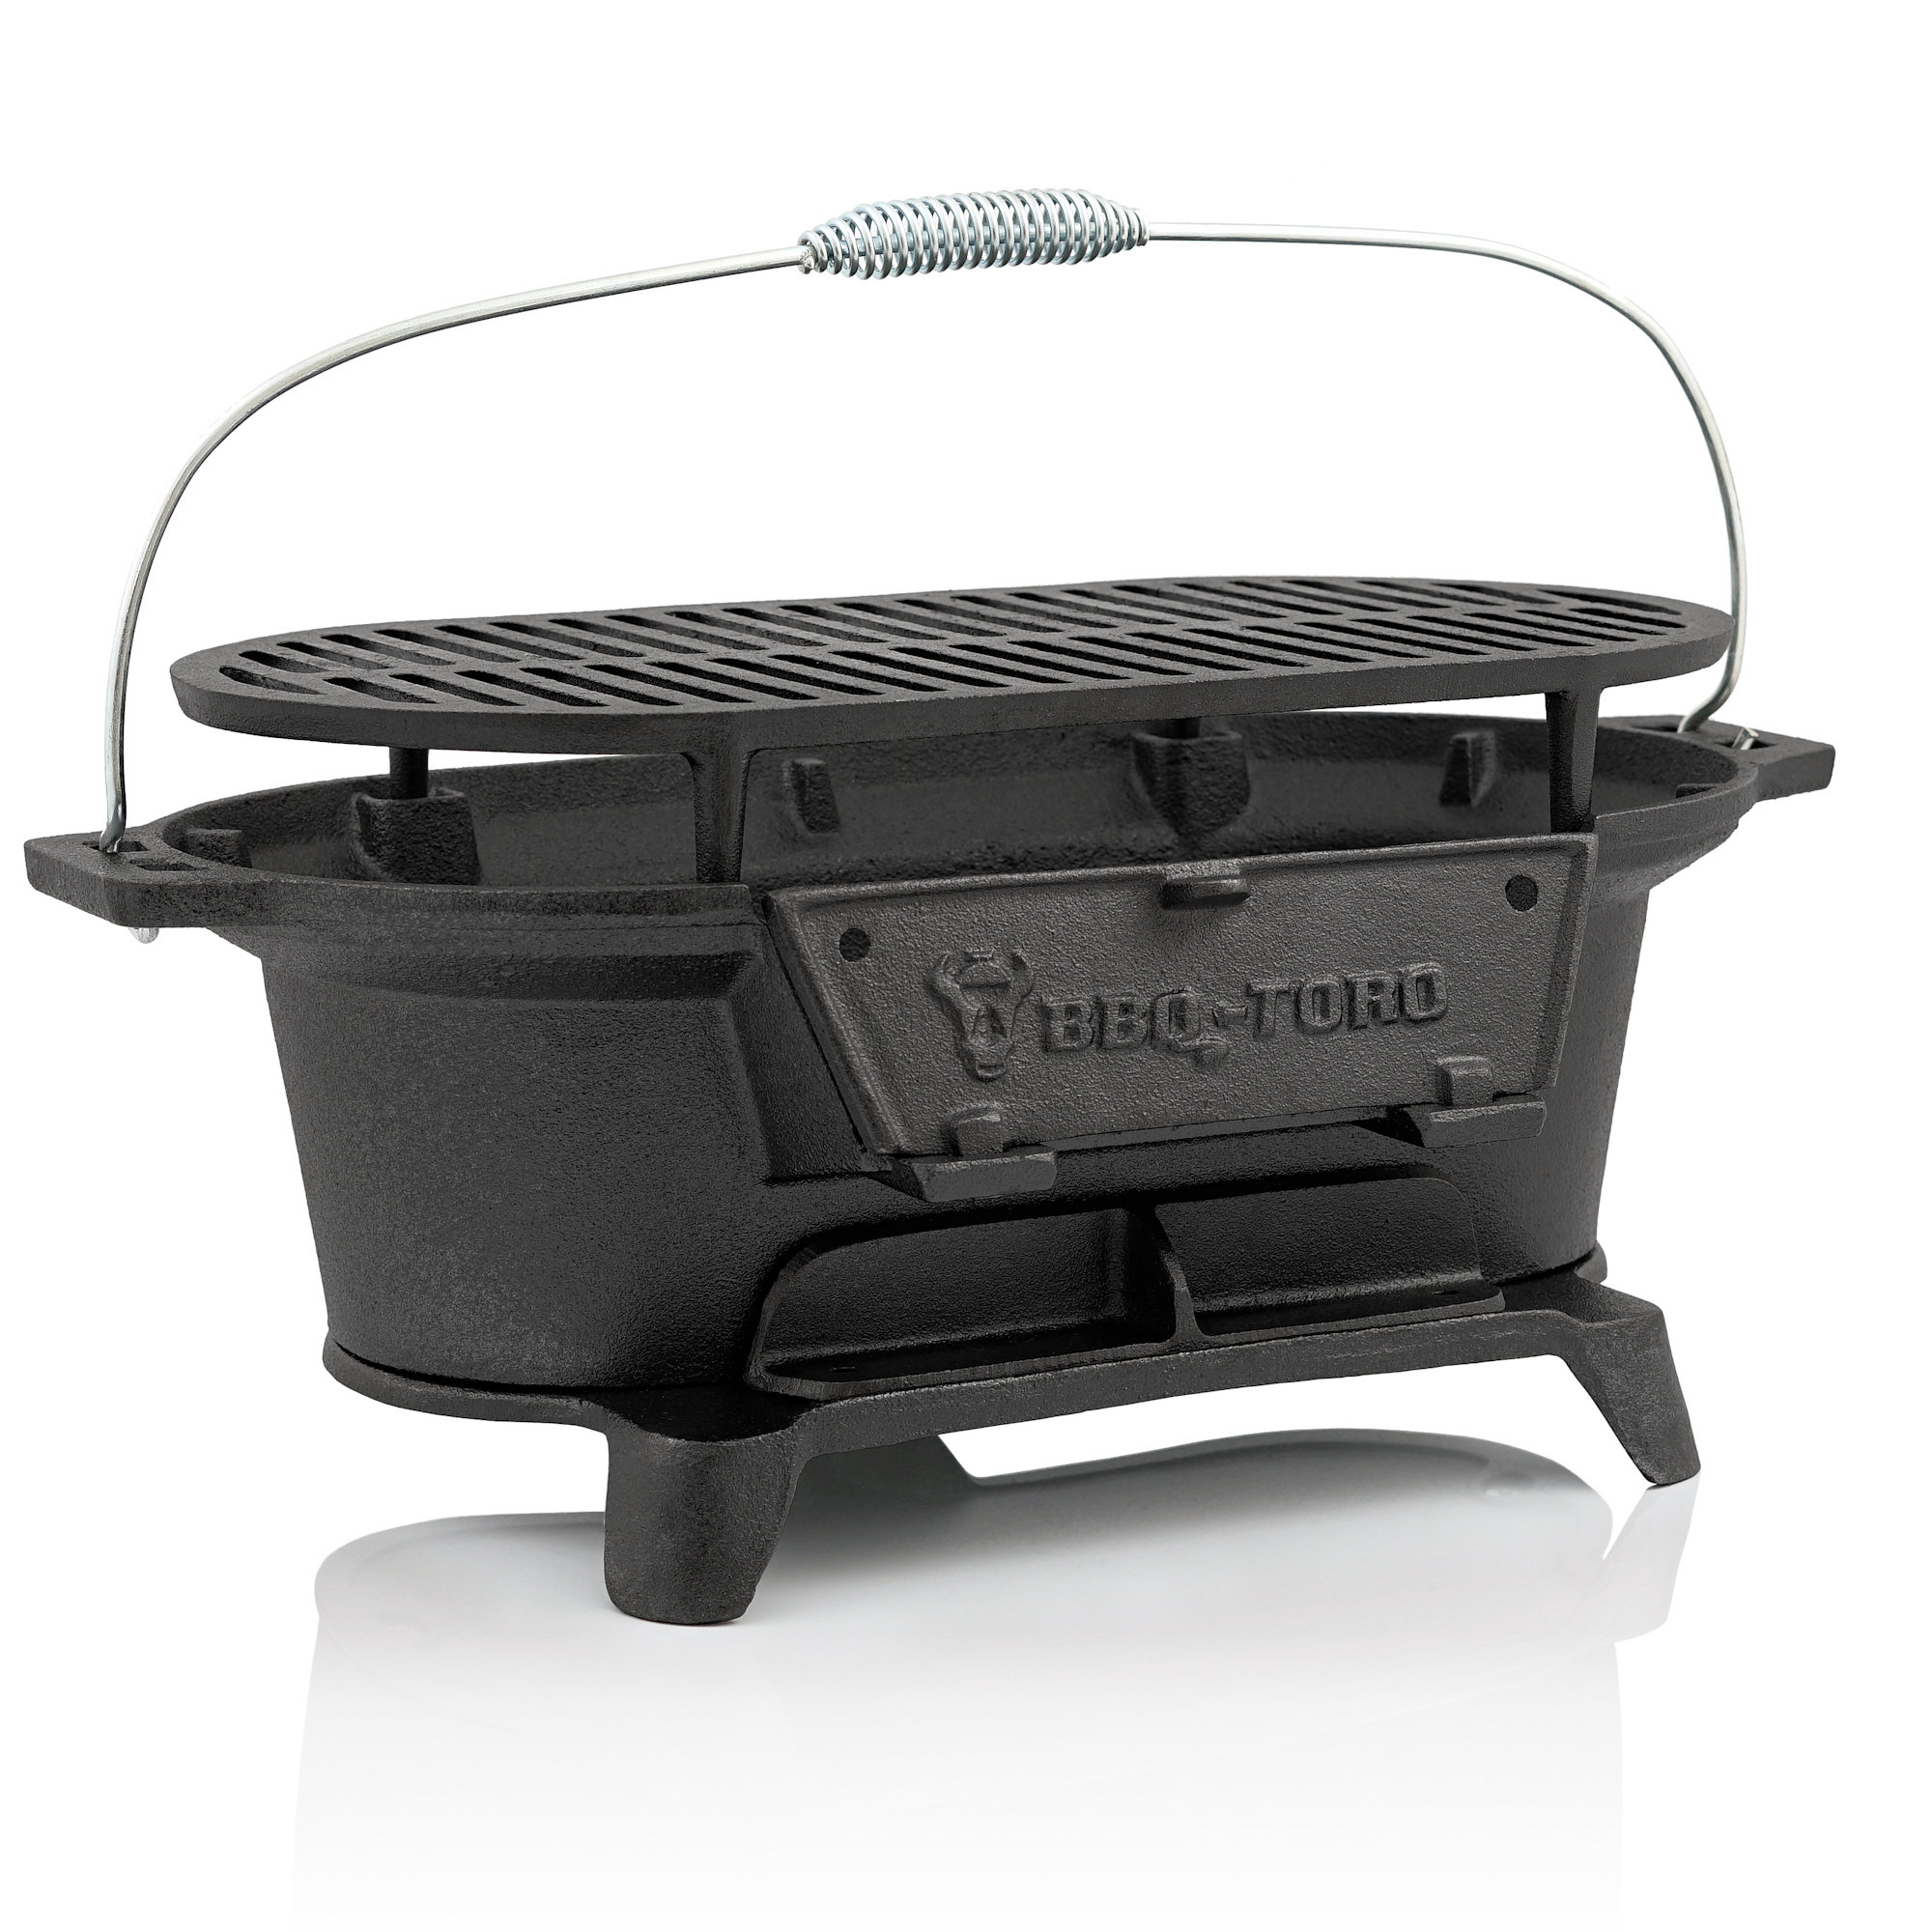 bbq toro gusseisen holzkohle grilltopf mit grillrost 50 x 25 x 23 cm bbq der. Black Bedroom Furniture Sets. Home Design Ideas